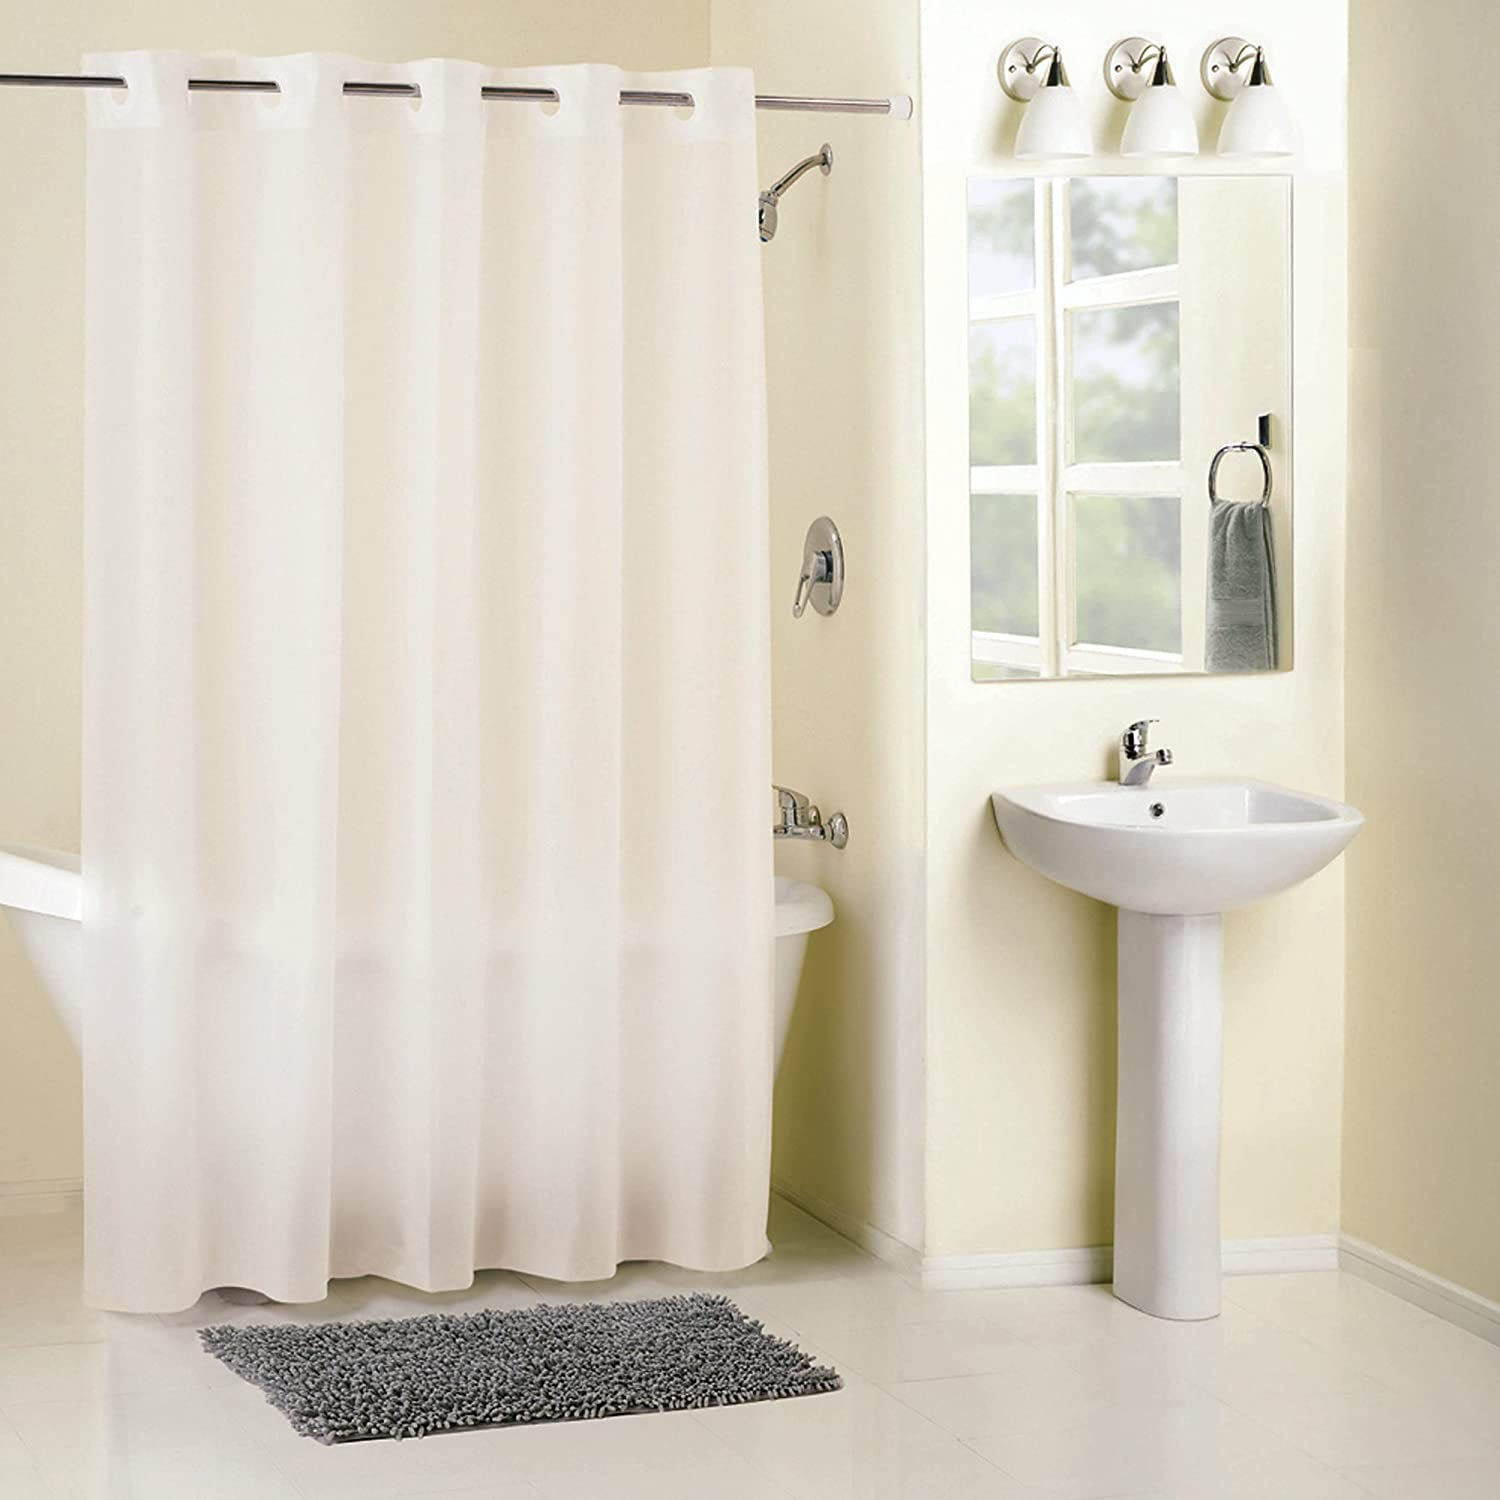 Amazon.com: Hookless RBH14FU411 PEVA Shower Curtain - Splash: Home ...